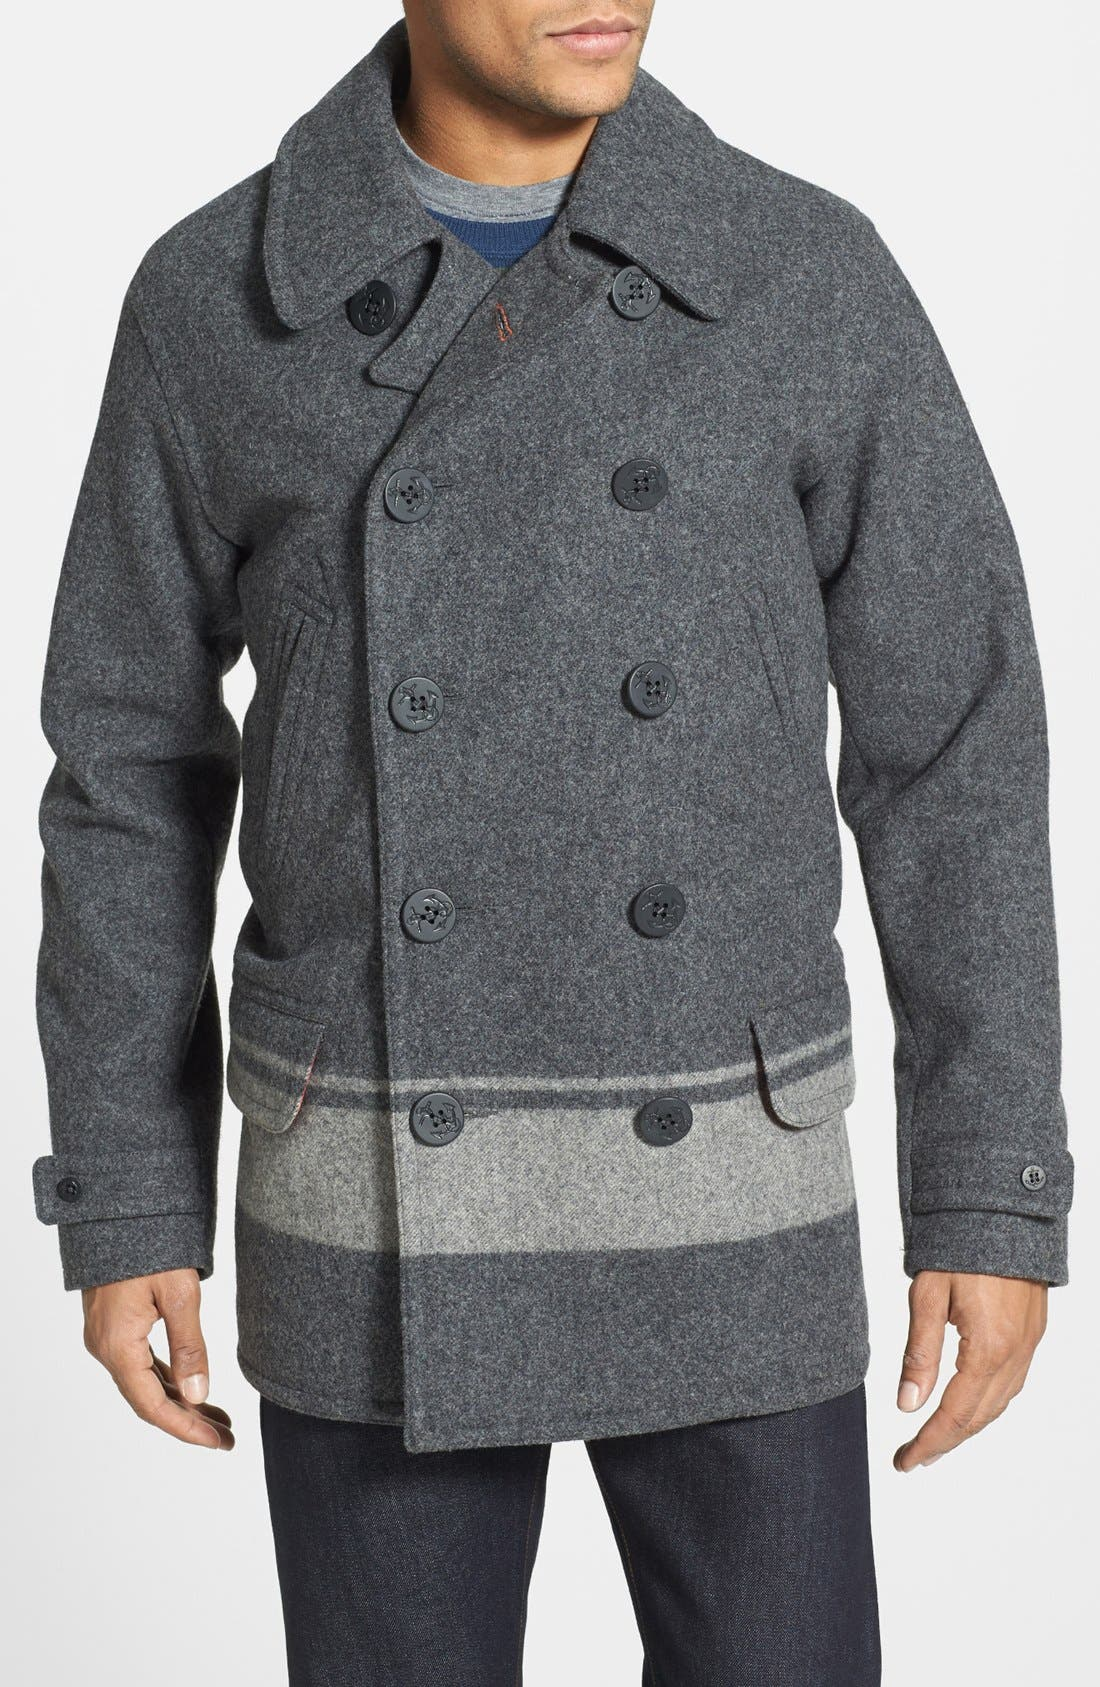 WOOLRICH 'Dockworker' Double Breasted Peacoat, Main, color, 034